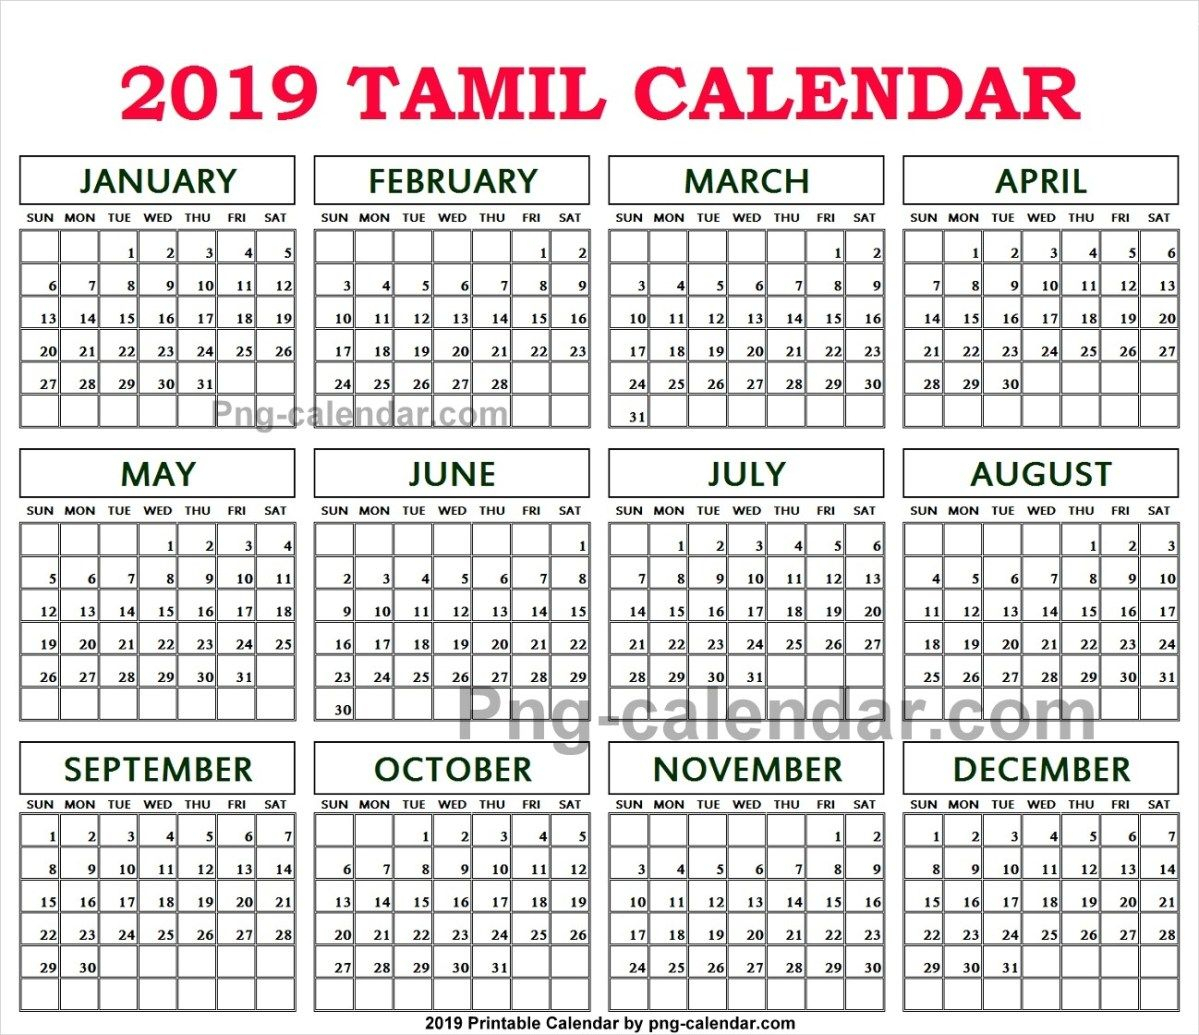 Tamil Monthly Calendar 2019 | Shocking Facts, Coloring Pages intended for Pocket Calendar Free Online